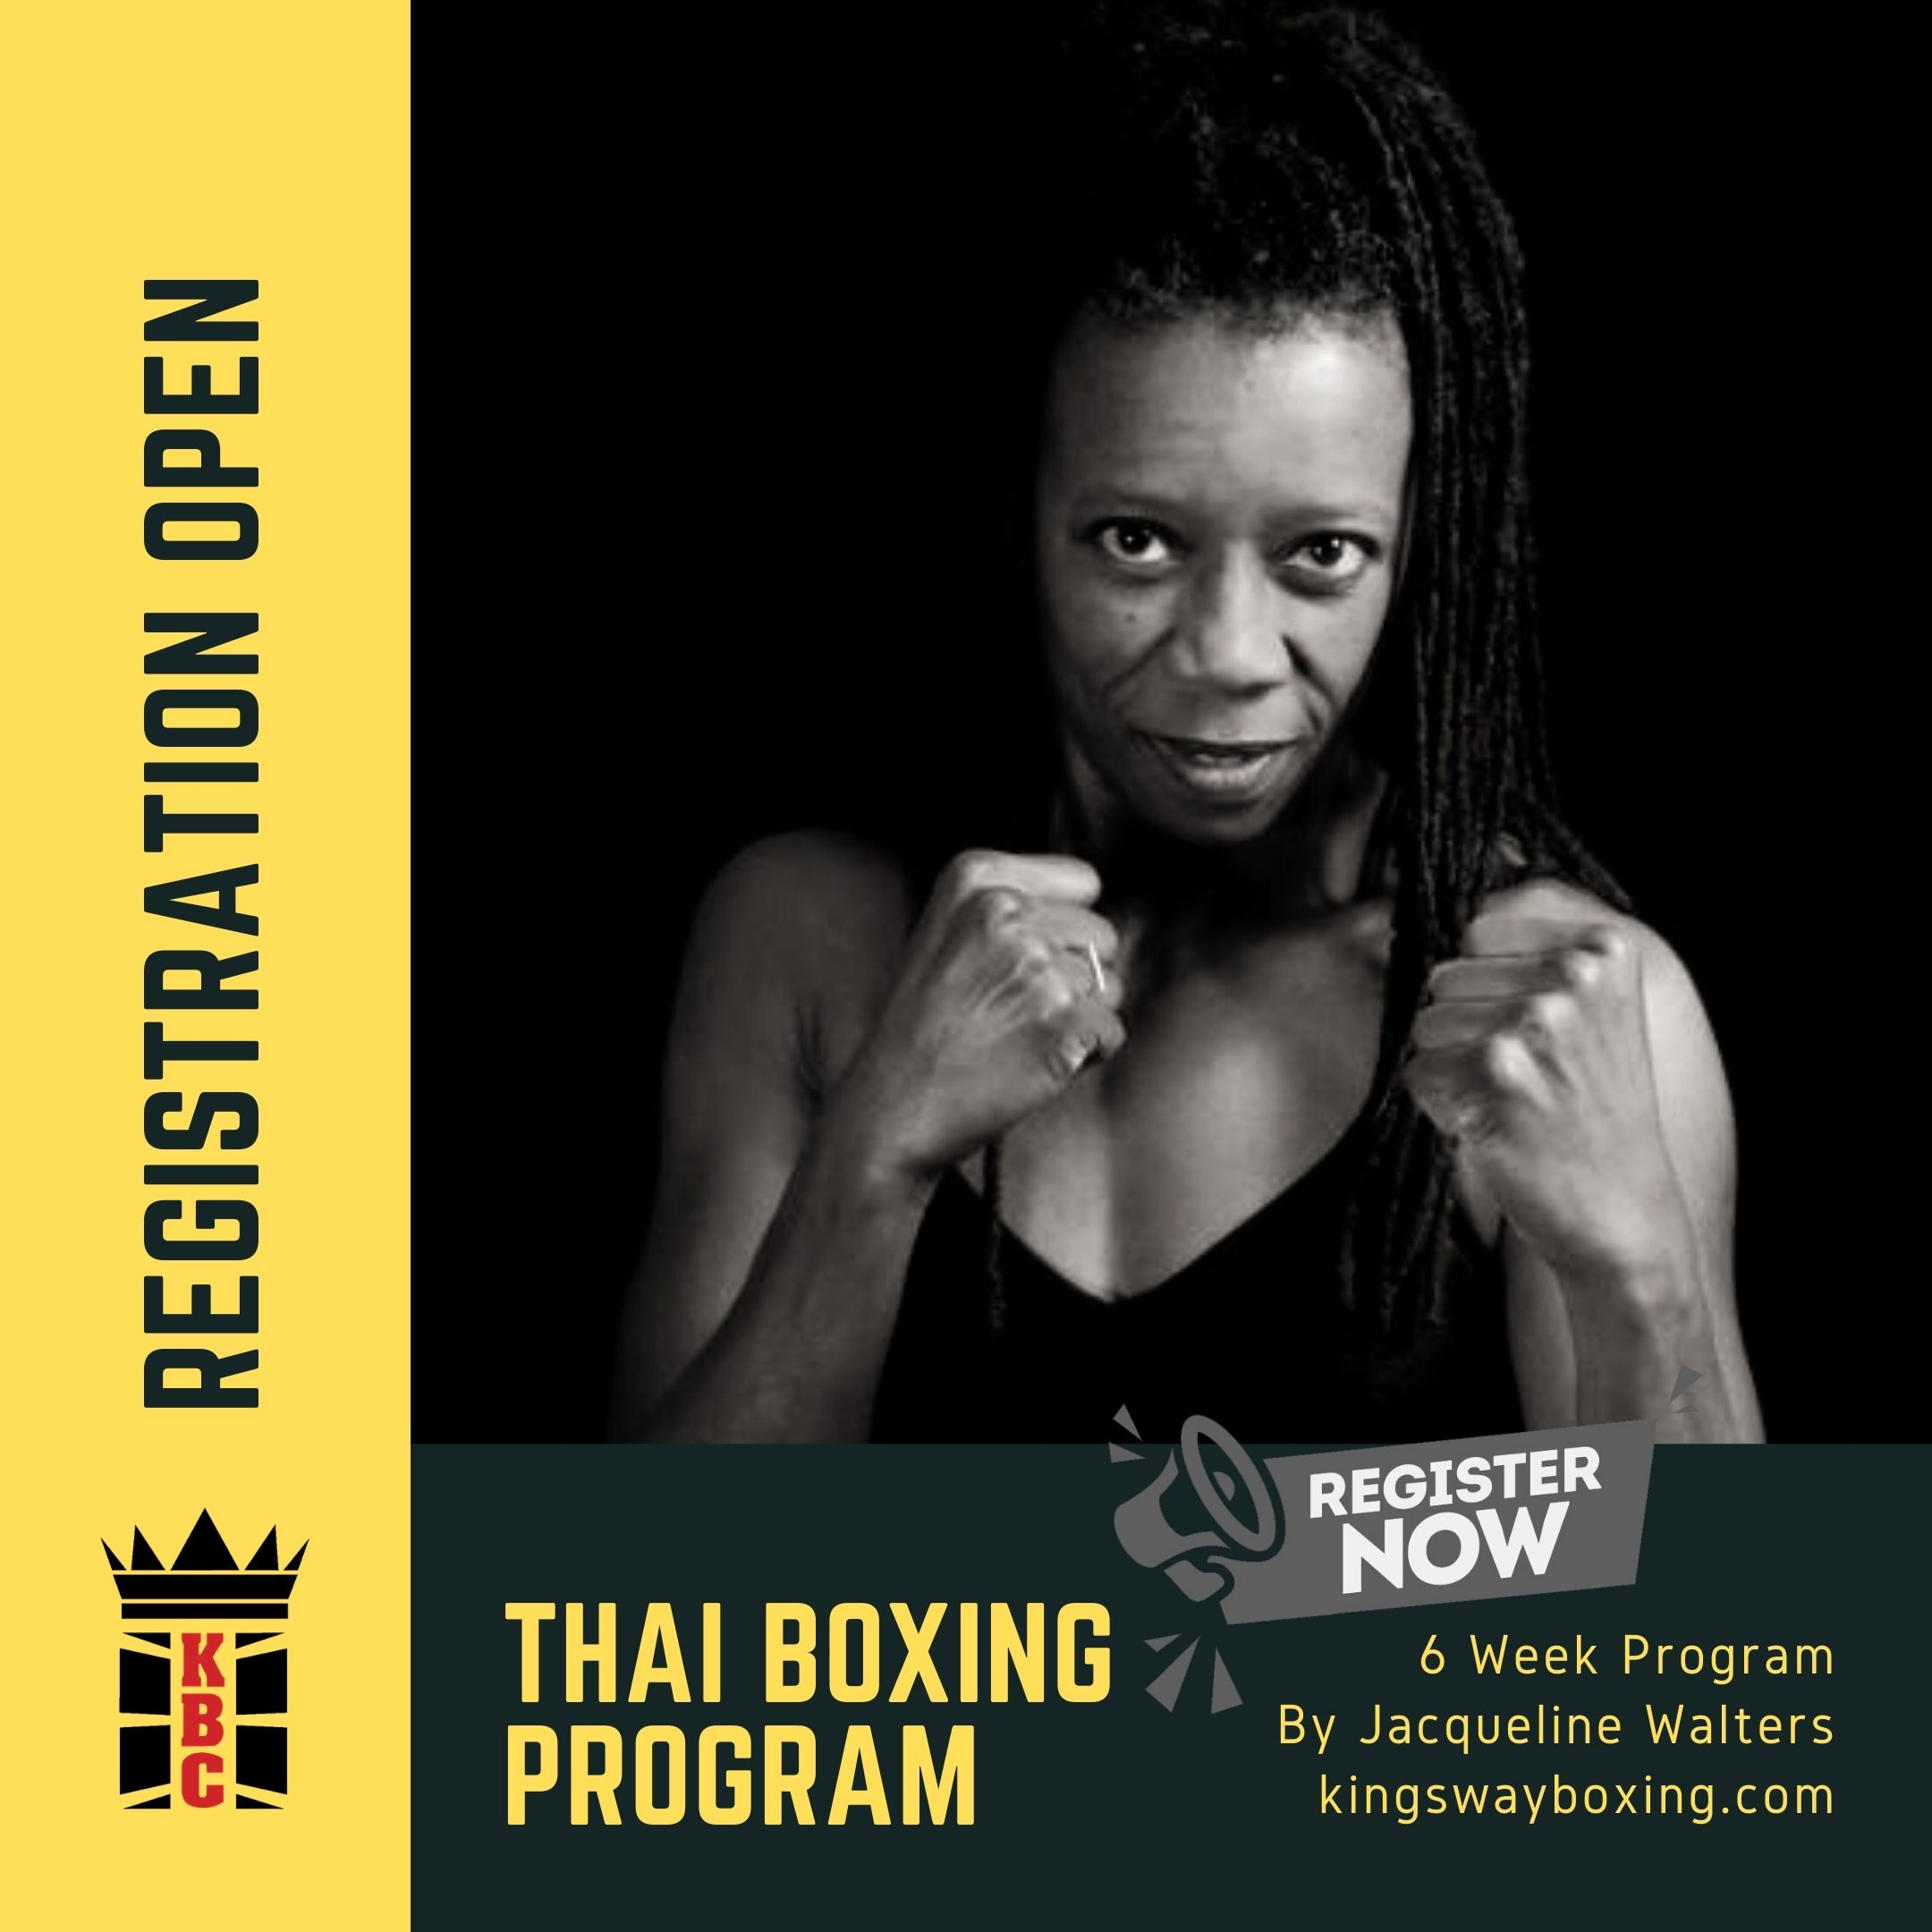 Proudly Introducing Thai Kickboxing By Jacqueline Walters